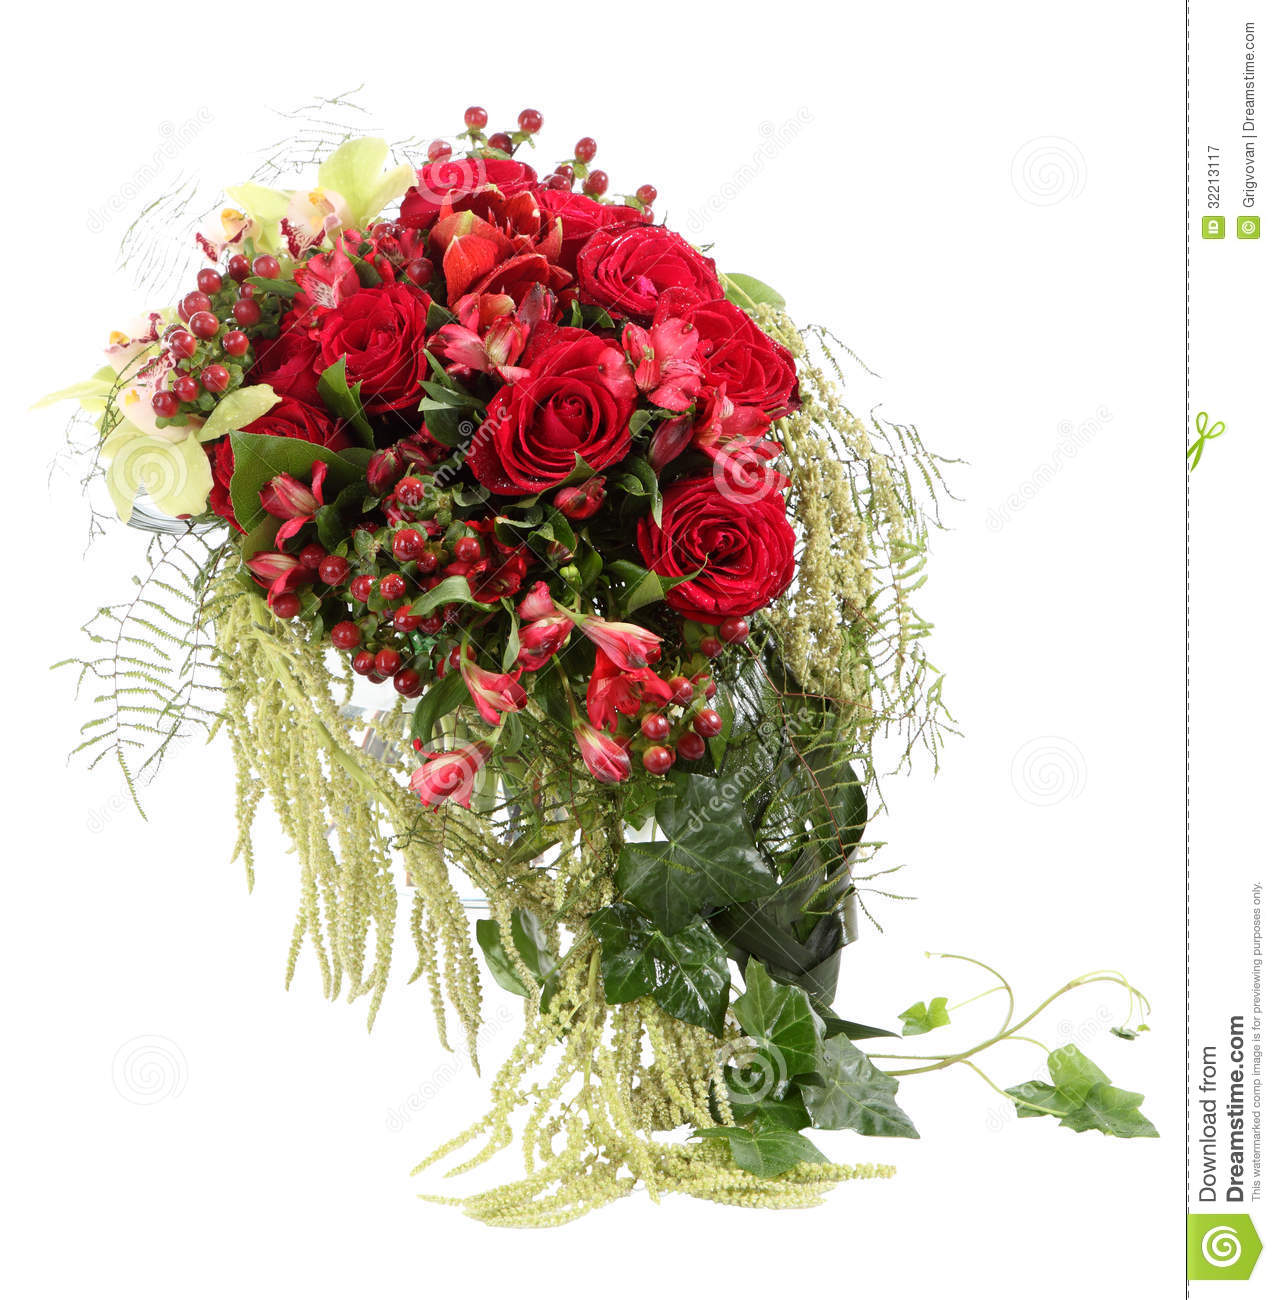 Bien connu Floral Compositions Of Red And White Roses. A Large Bouquet Of  BP45